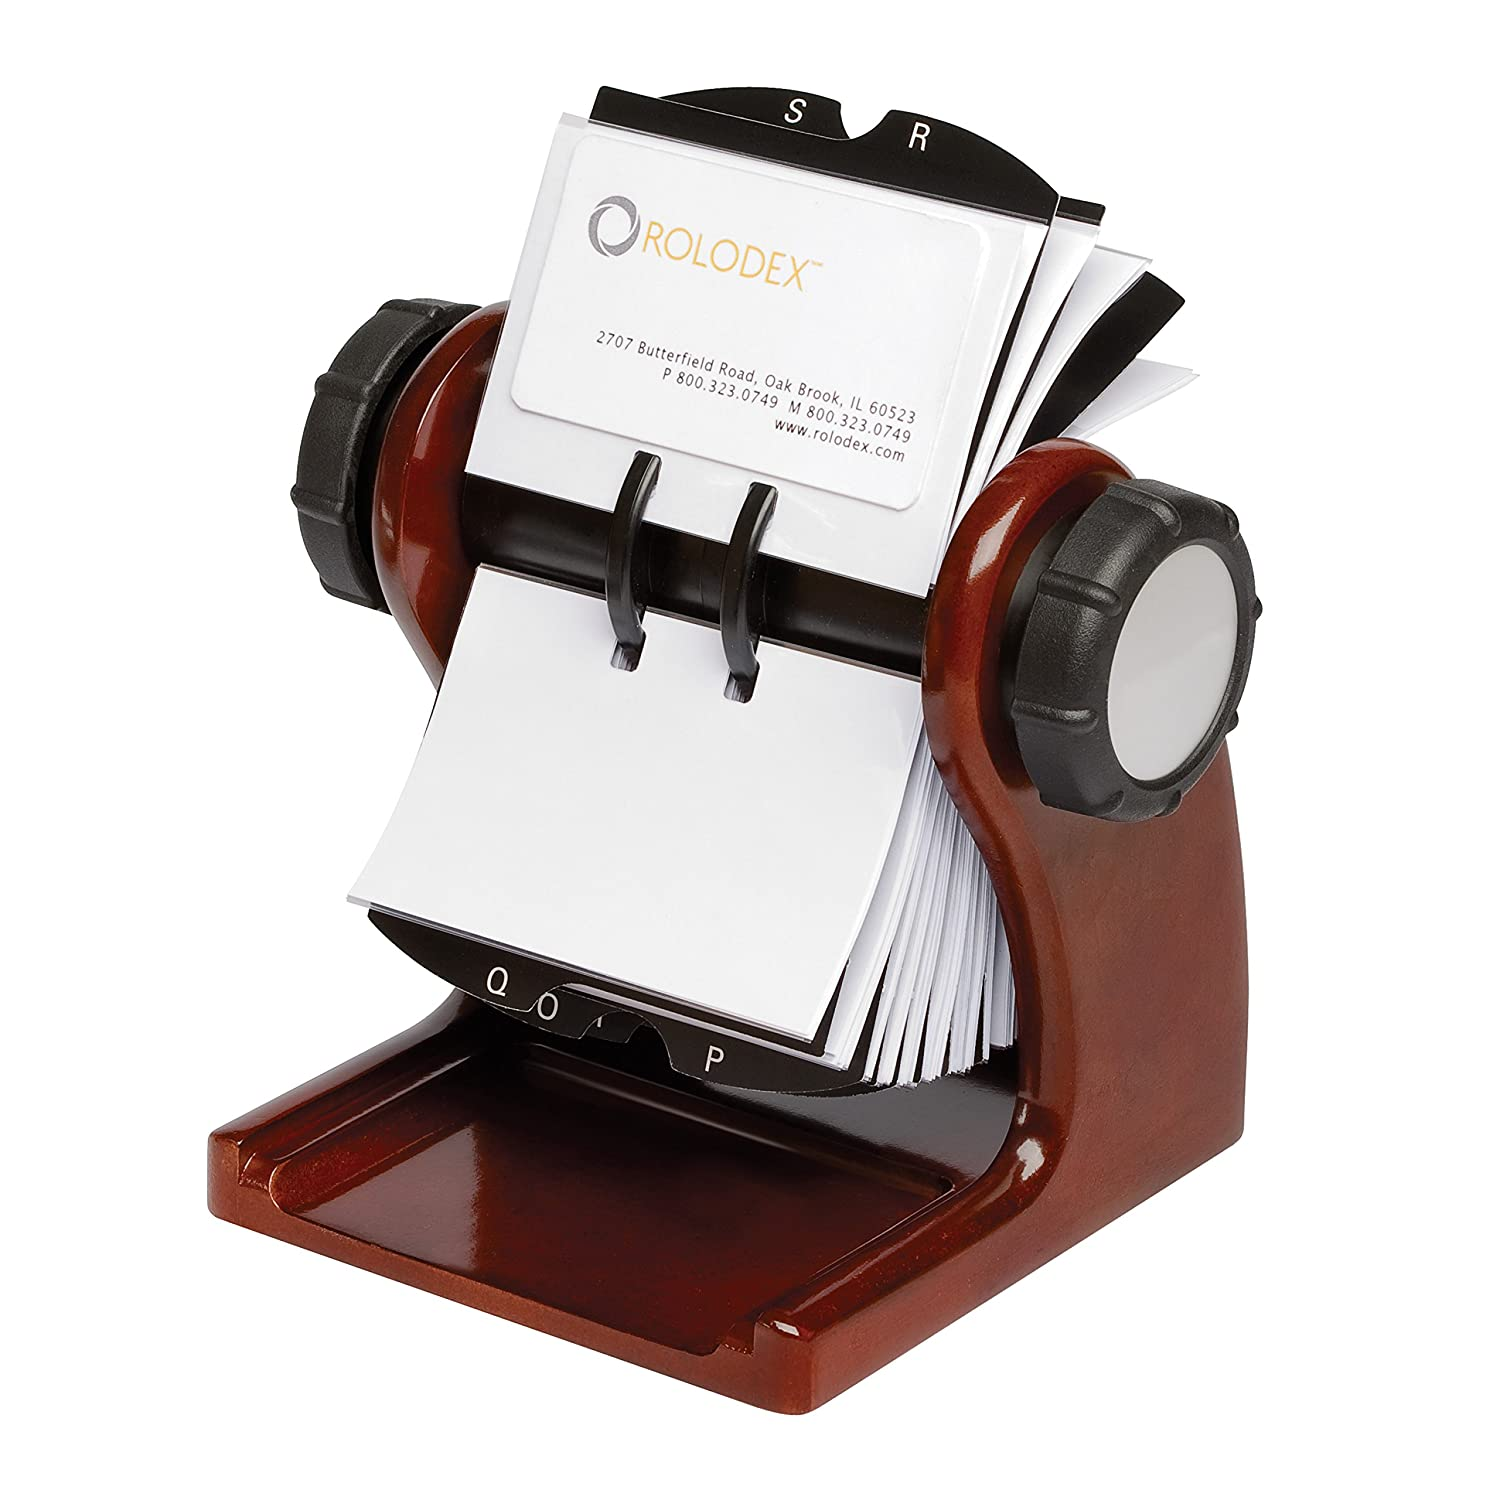 rolodex wood tones collection open rotary business